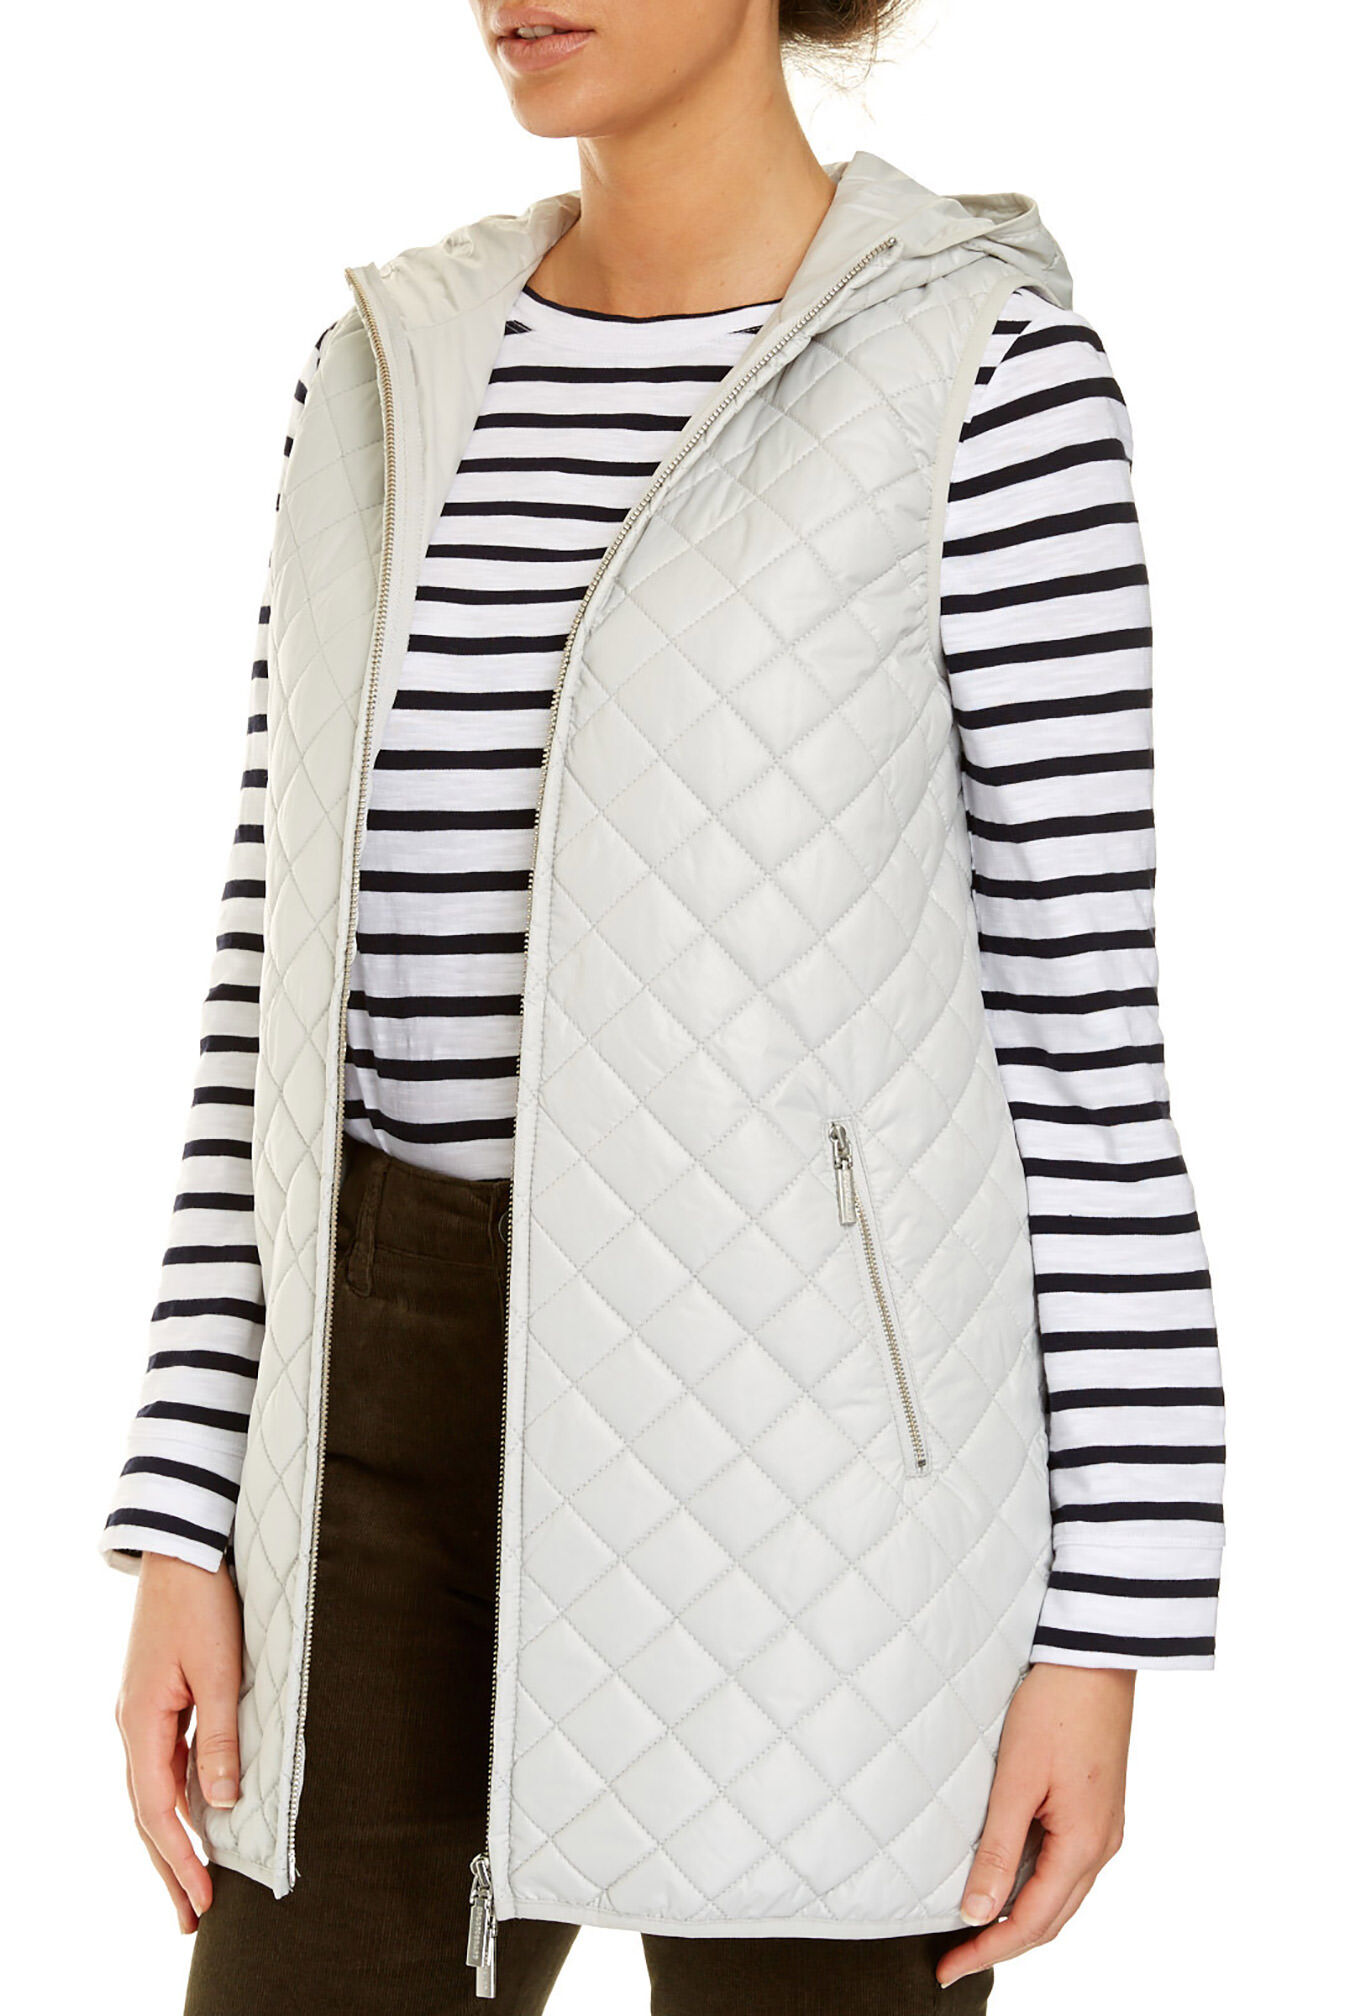 NEW-Sportscraft-WOMENS-Clementine-Quilted-Vest-Coats-Jackets